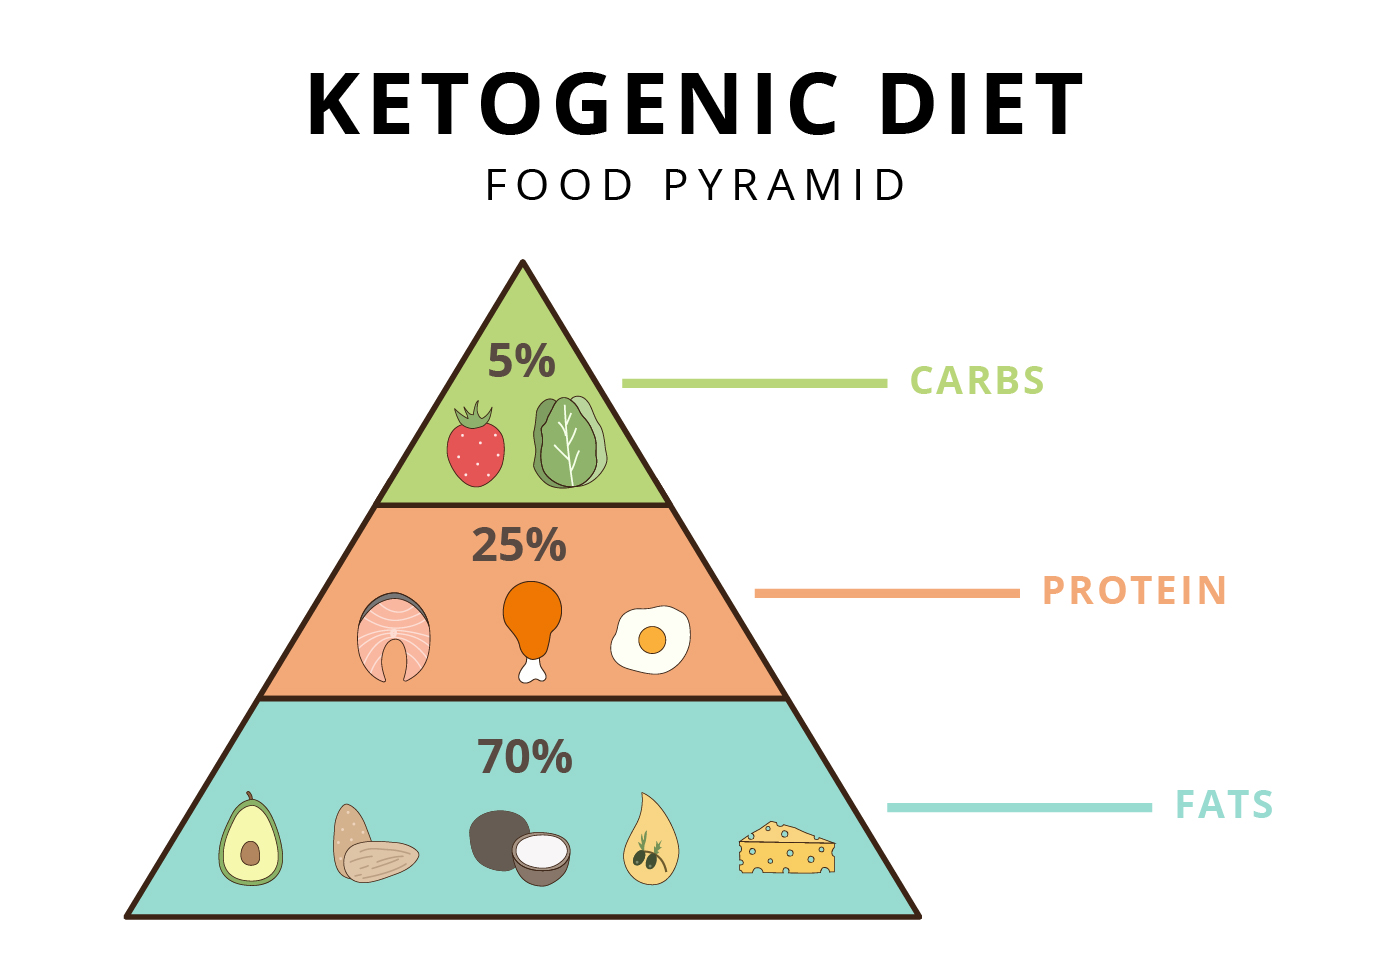 Why the ketogenic diet may help fight diabetes, cancer